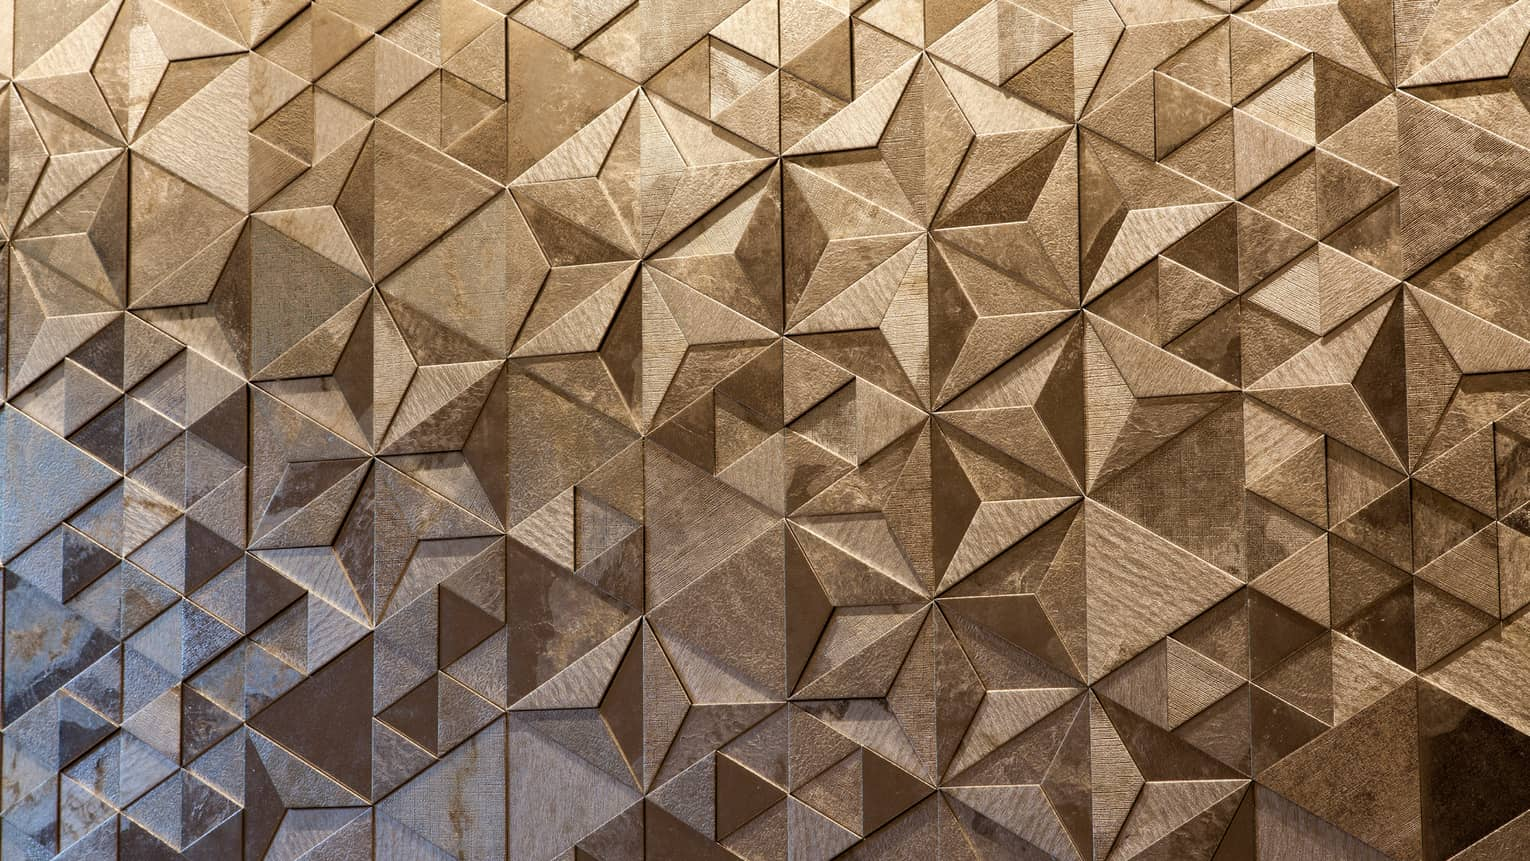 Close-up of Sushi Wakon geometric designs on silver tile wall